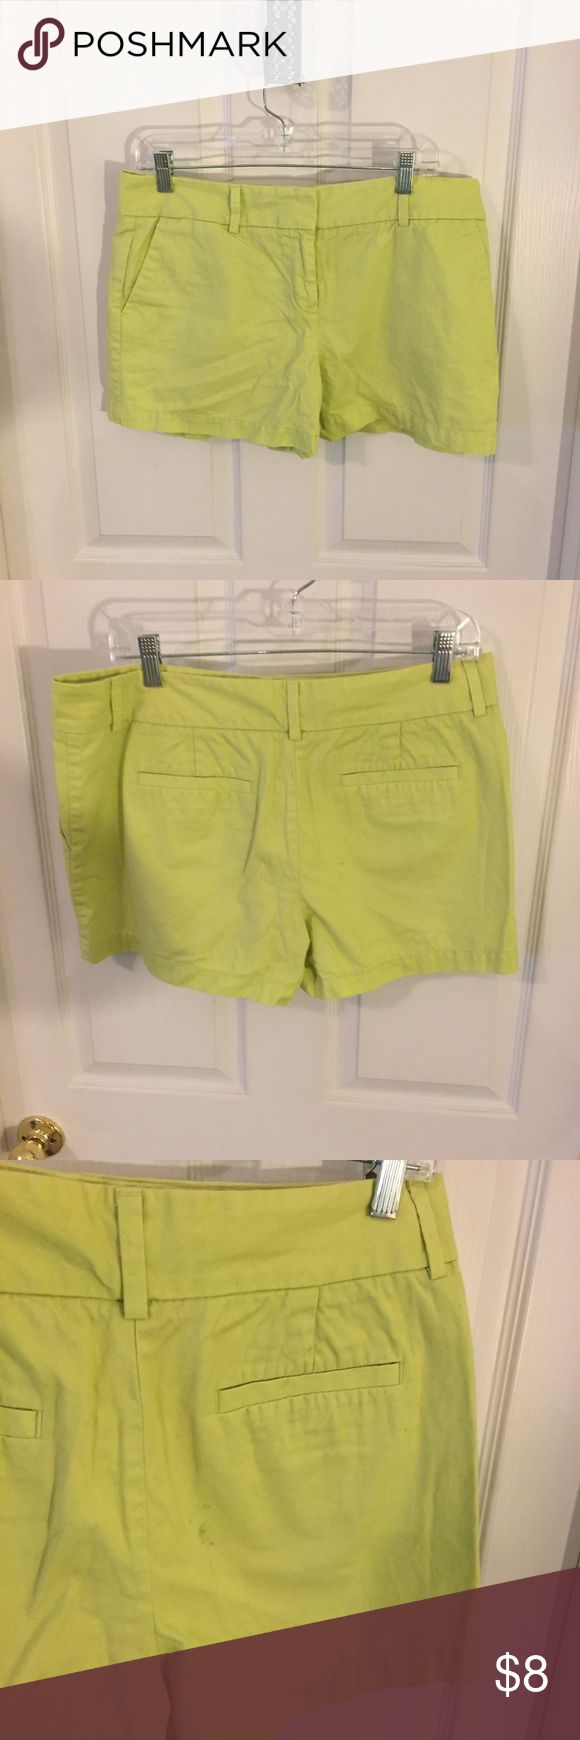 LOFT Lime Green Shorts LOFT Lime Green Shorts.  Size 10.  100% Cotton.  3 inch inseam. LOFT Shorts